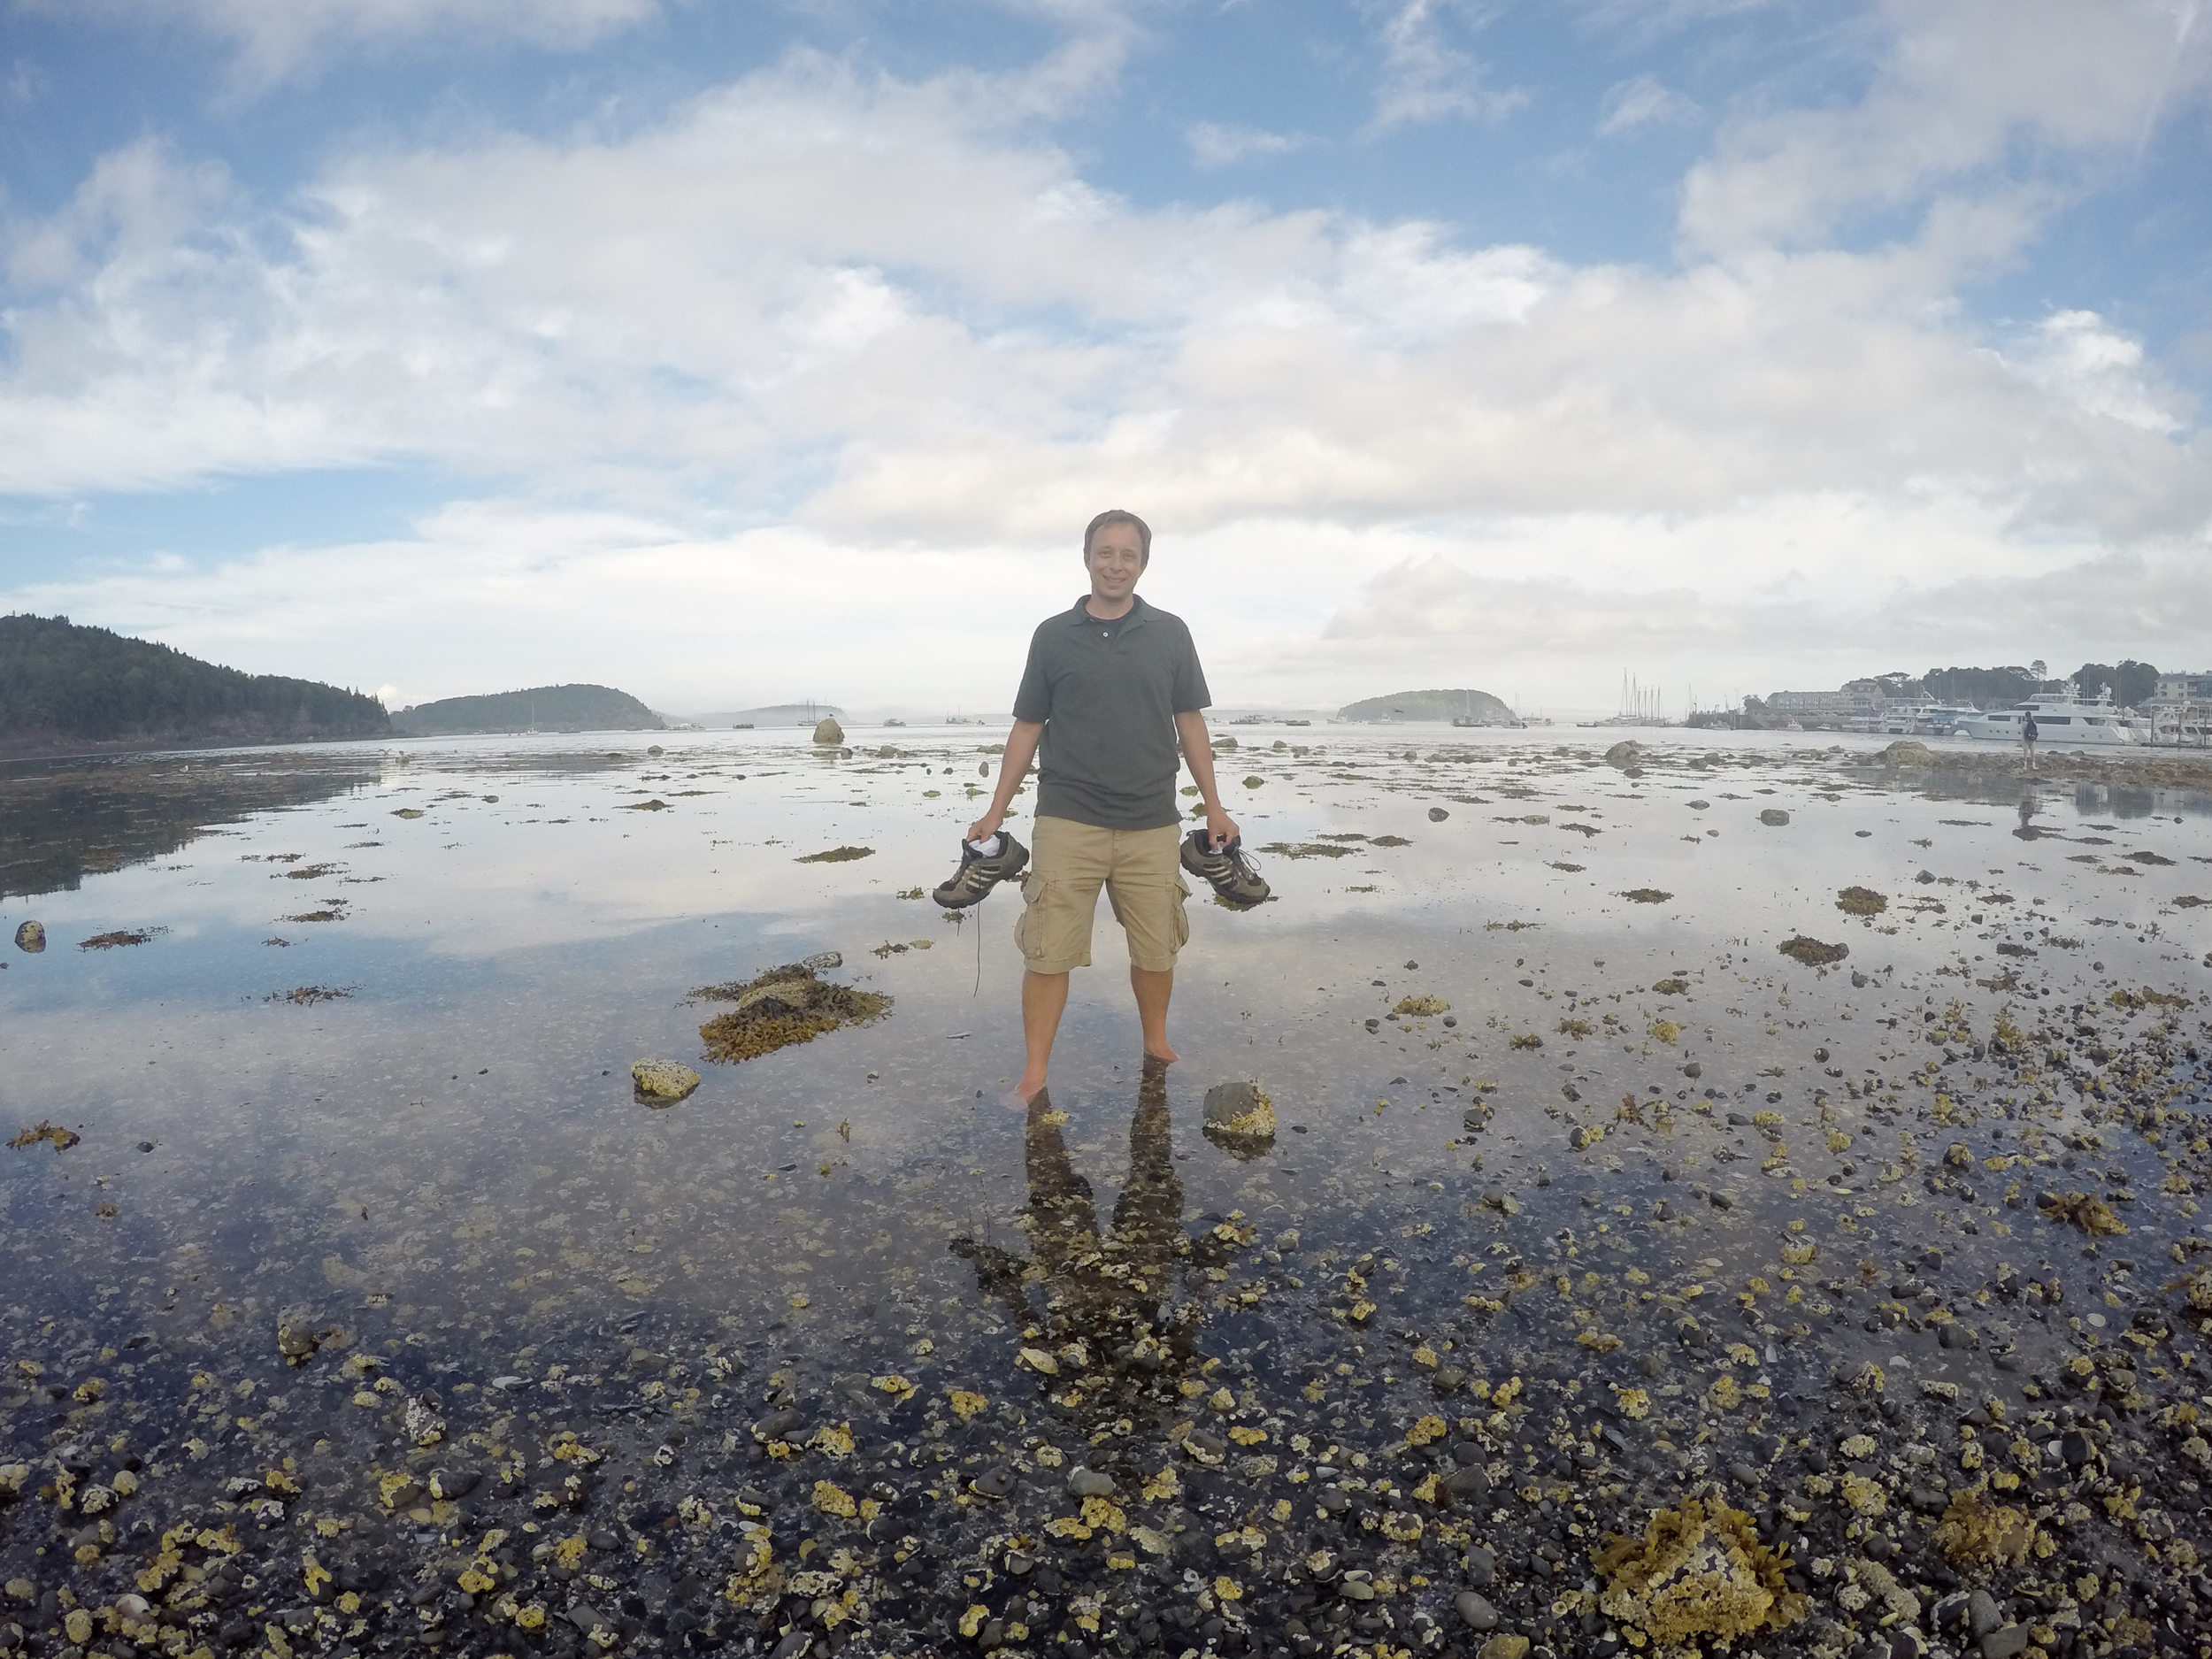 This is what happens when the tide comes back in so unexpectedly fast. Mark had a little dry path to walk out and look at some pools and two minutes later, his path was gone. He had to balance on a rock and take off his shoes so they wouldn't get soaked.